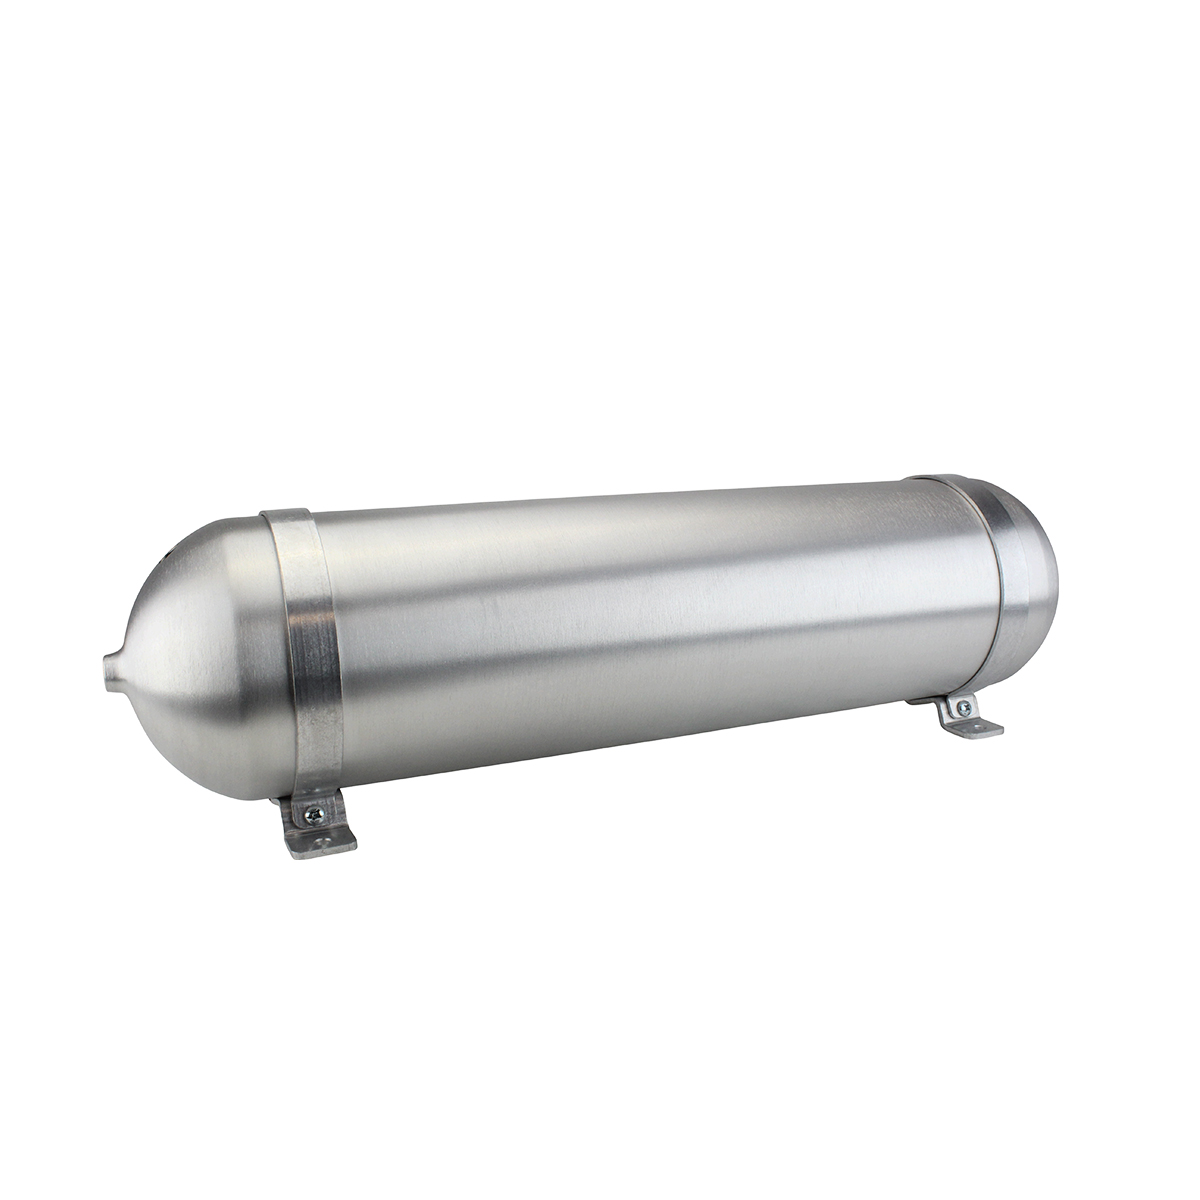 "SA628038-01 Seamless Tanks Aluminum Air Tank 28"" Length 6.625"" Diameter, (4) 3/8"" Ports (1) 1/4"" Port, 200psi Rated, 3.44 Gallons"